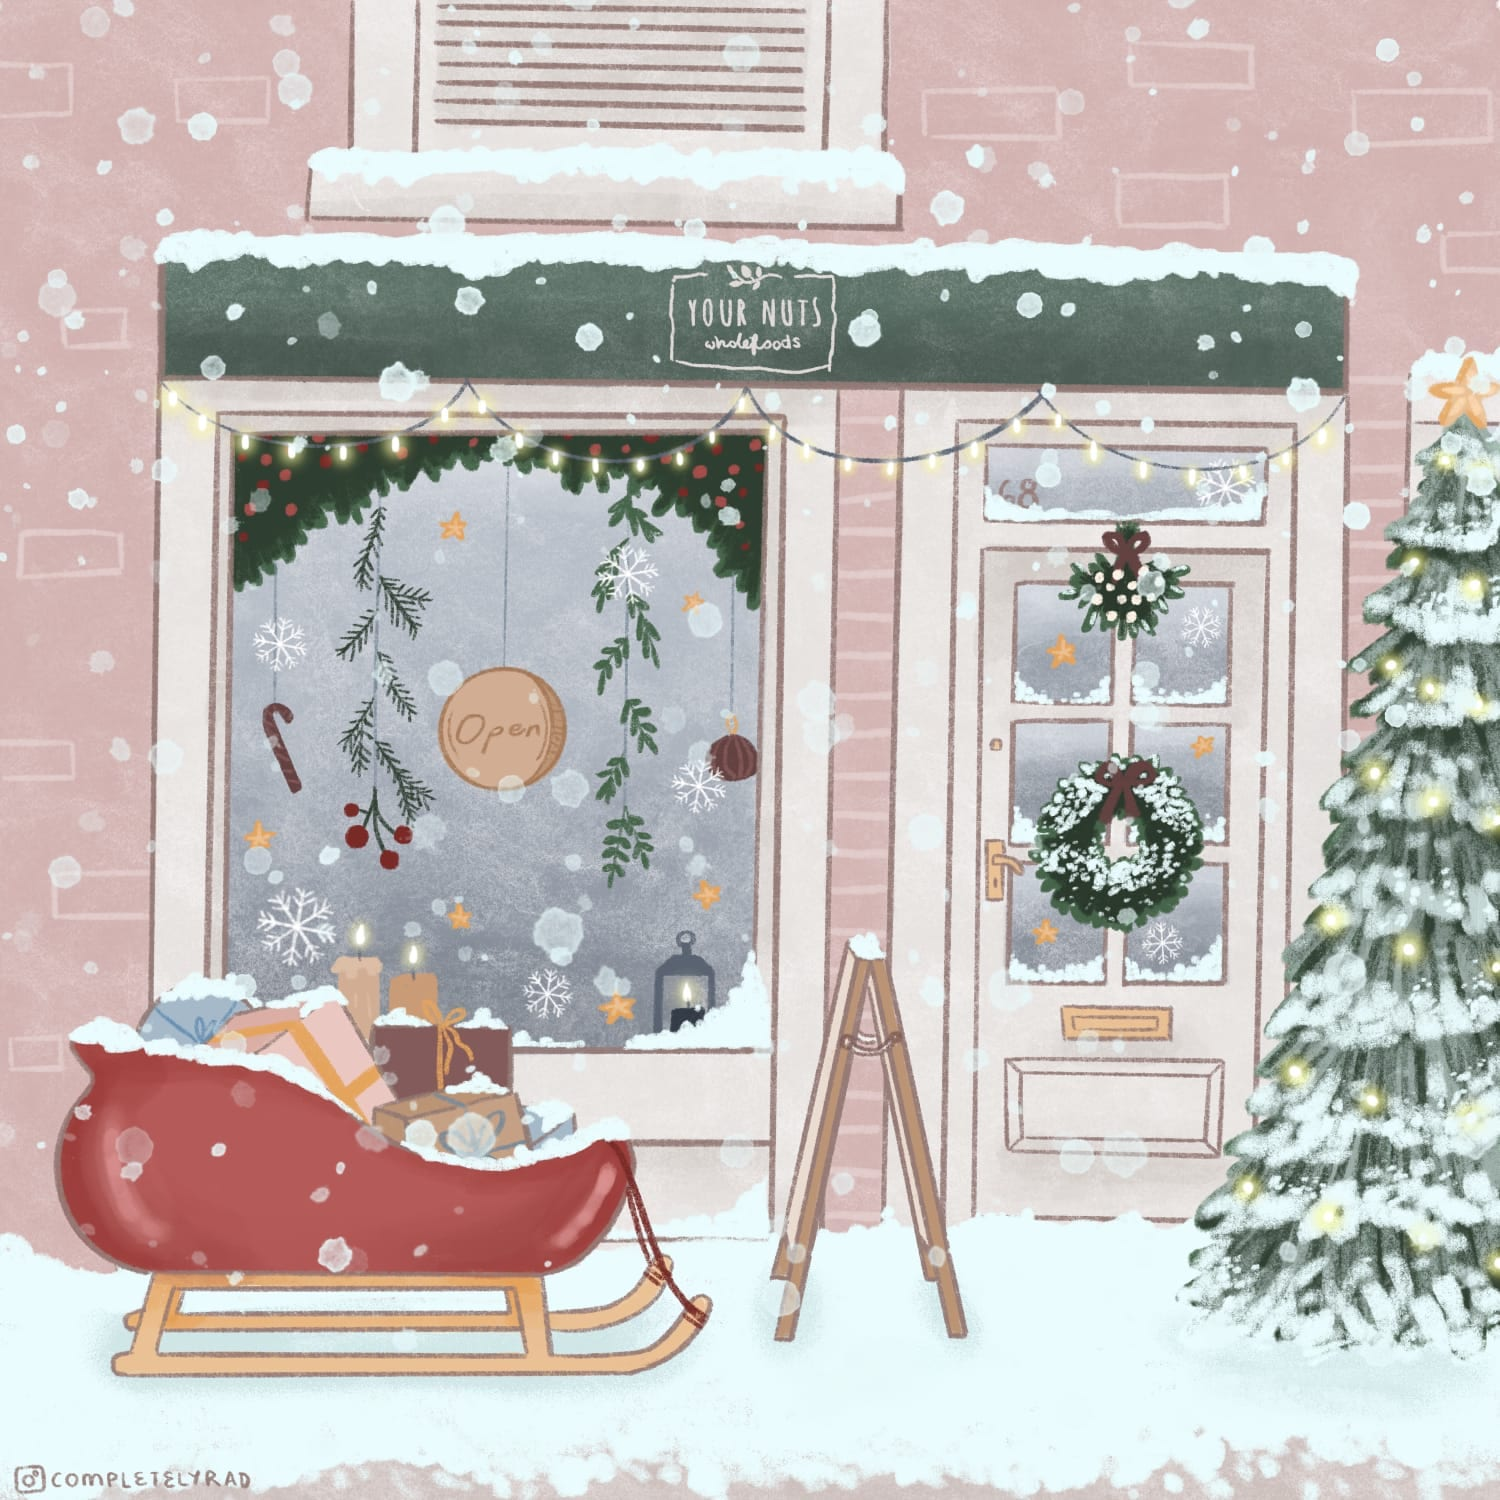 You Nuts Christmas illustration of shop front in Holmfirth, Huddersfield